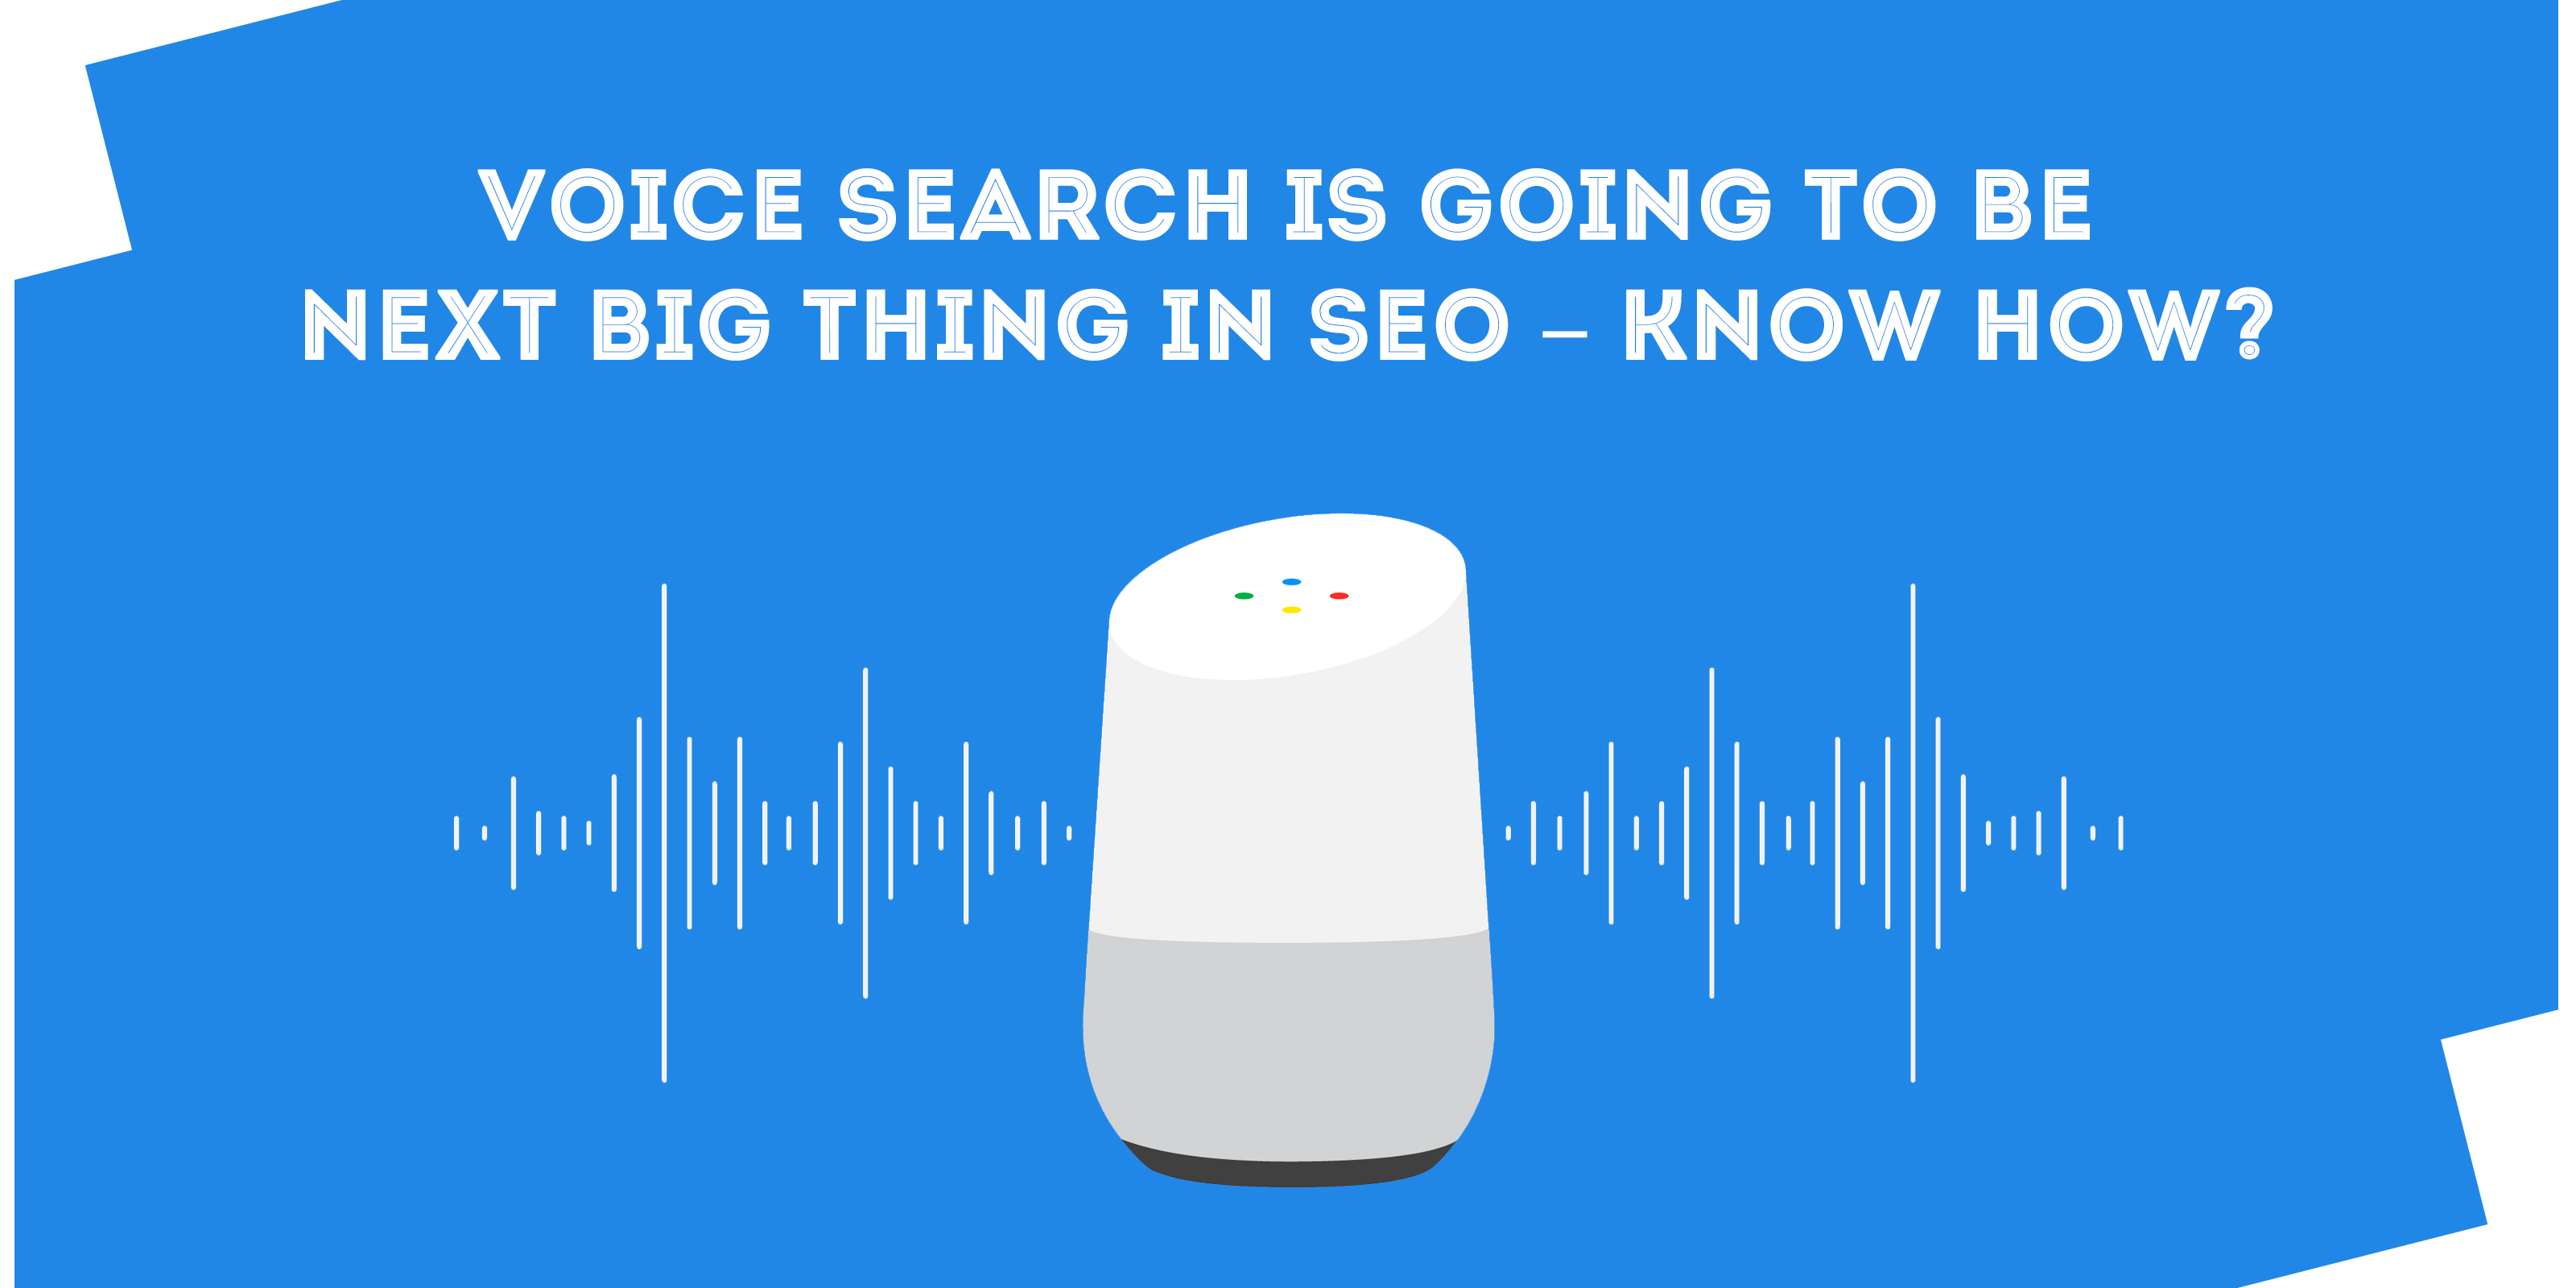 Voice Search is Going to be next big thing in SEO – Know How?